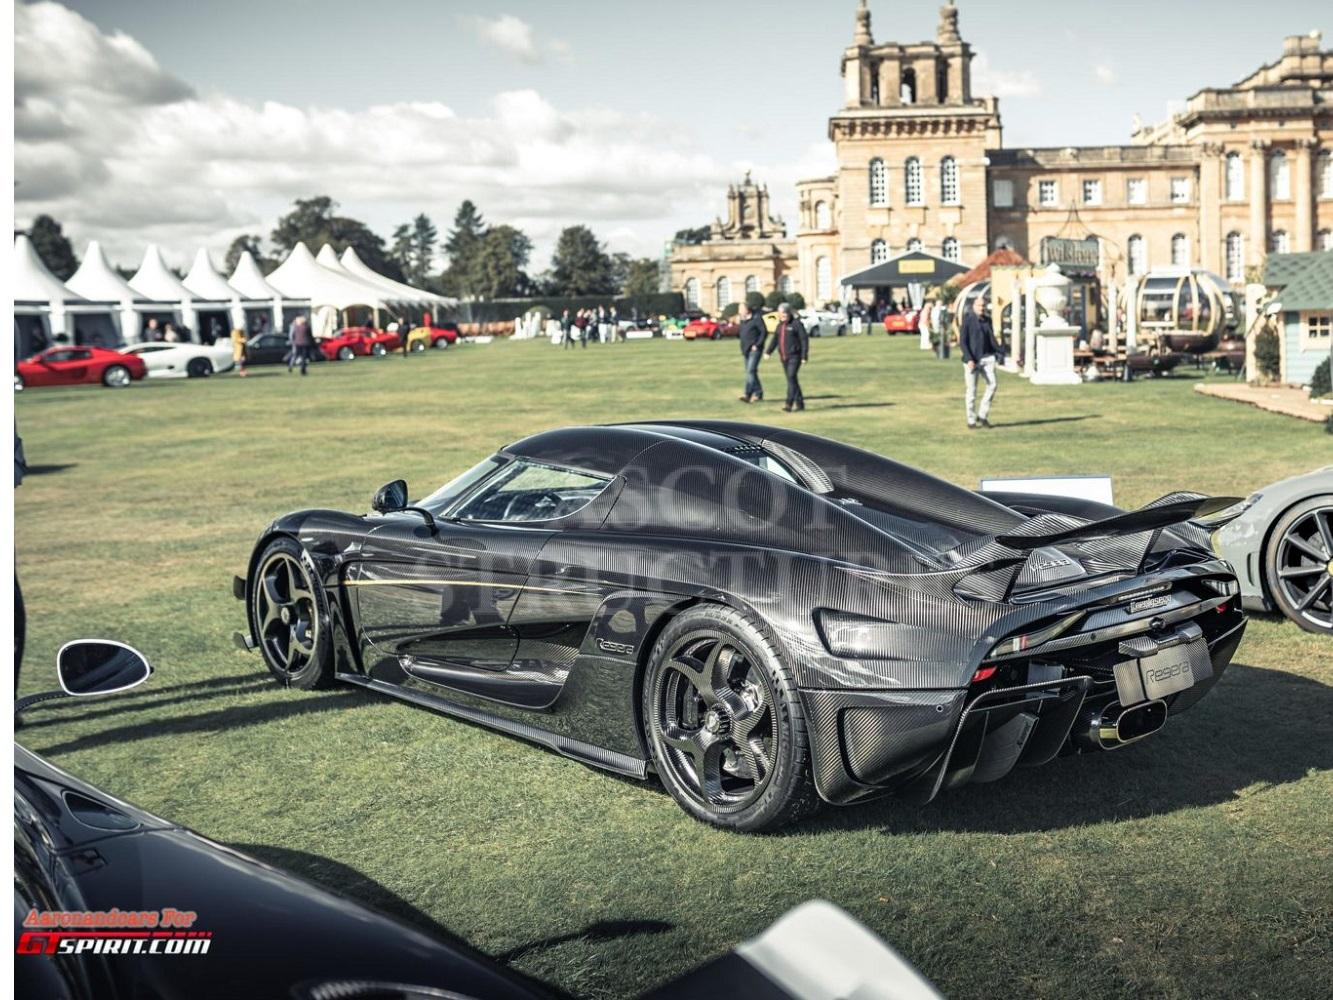 Salon-Prive-2020-Regera-Carbon-1536x1025